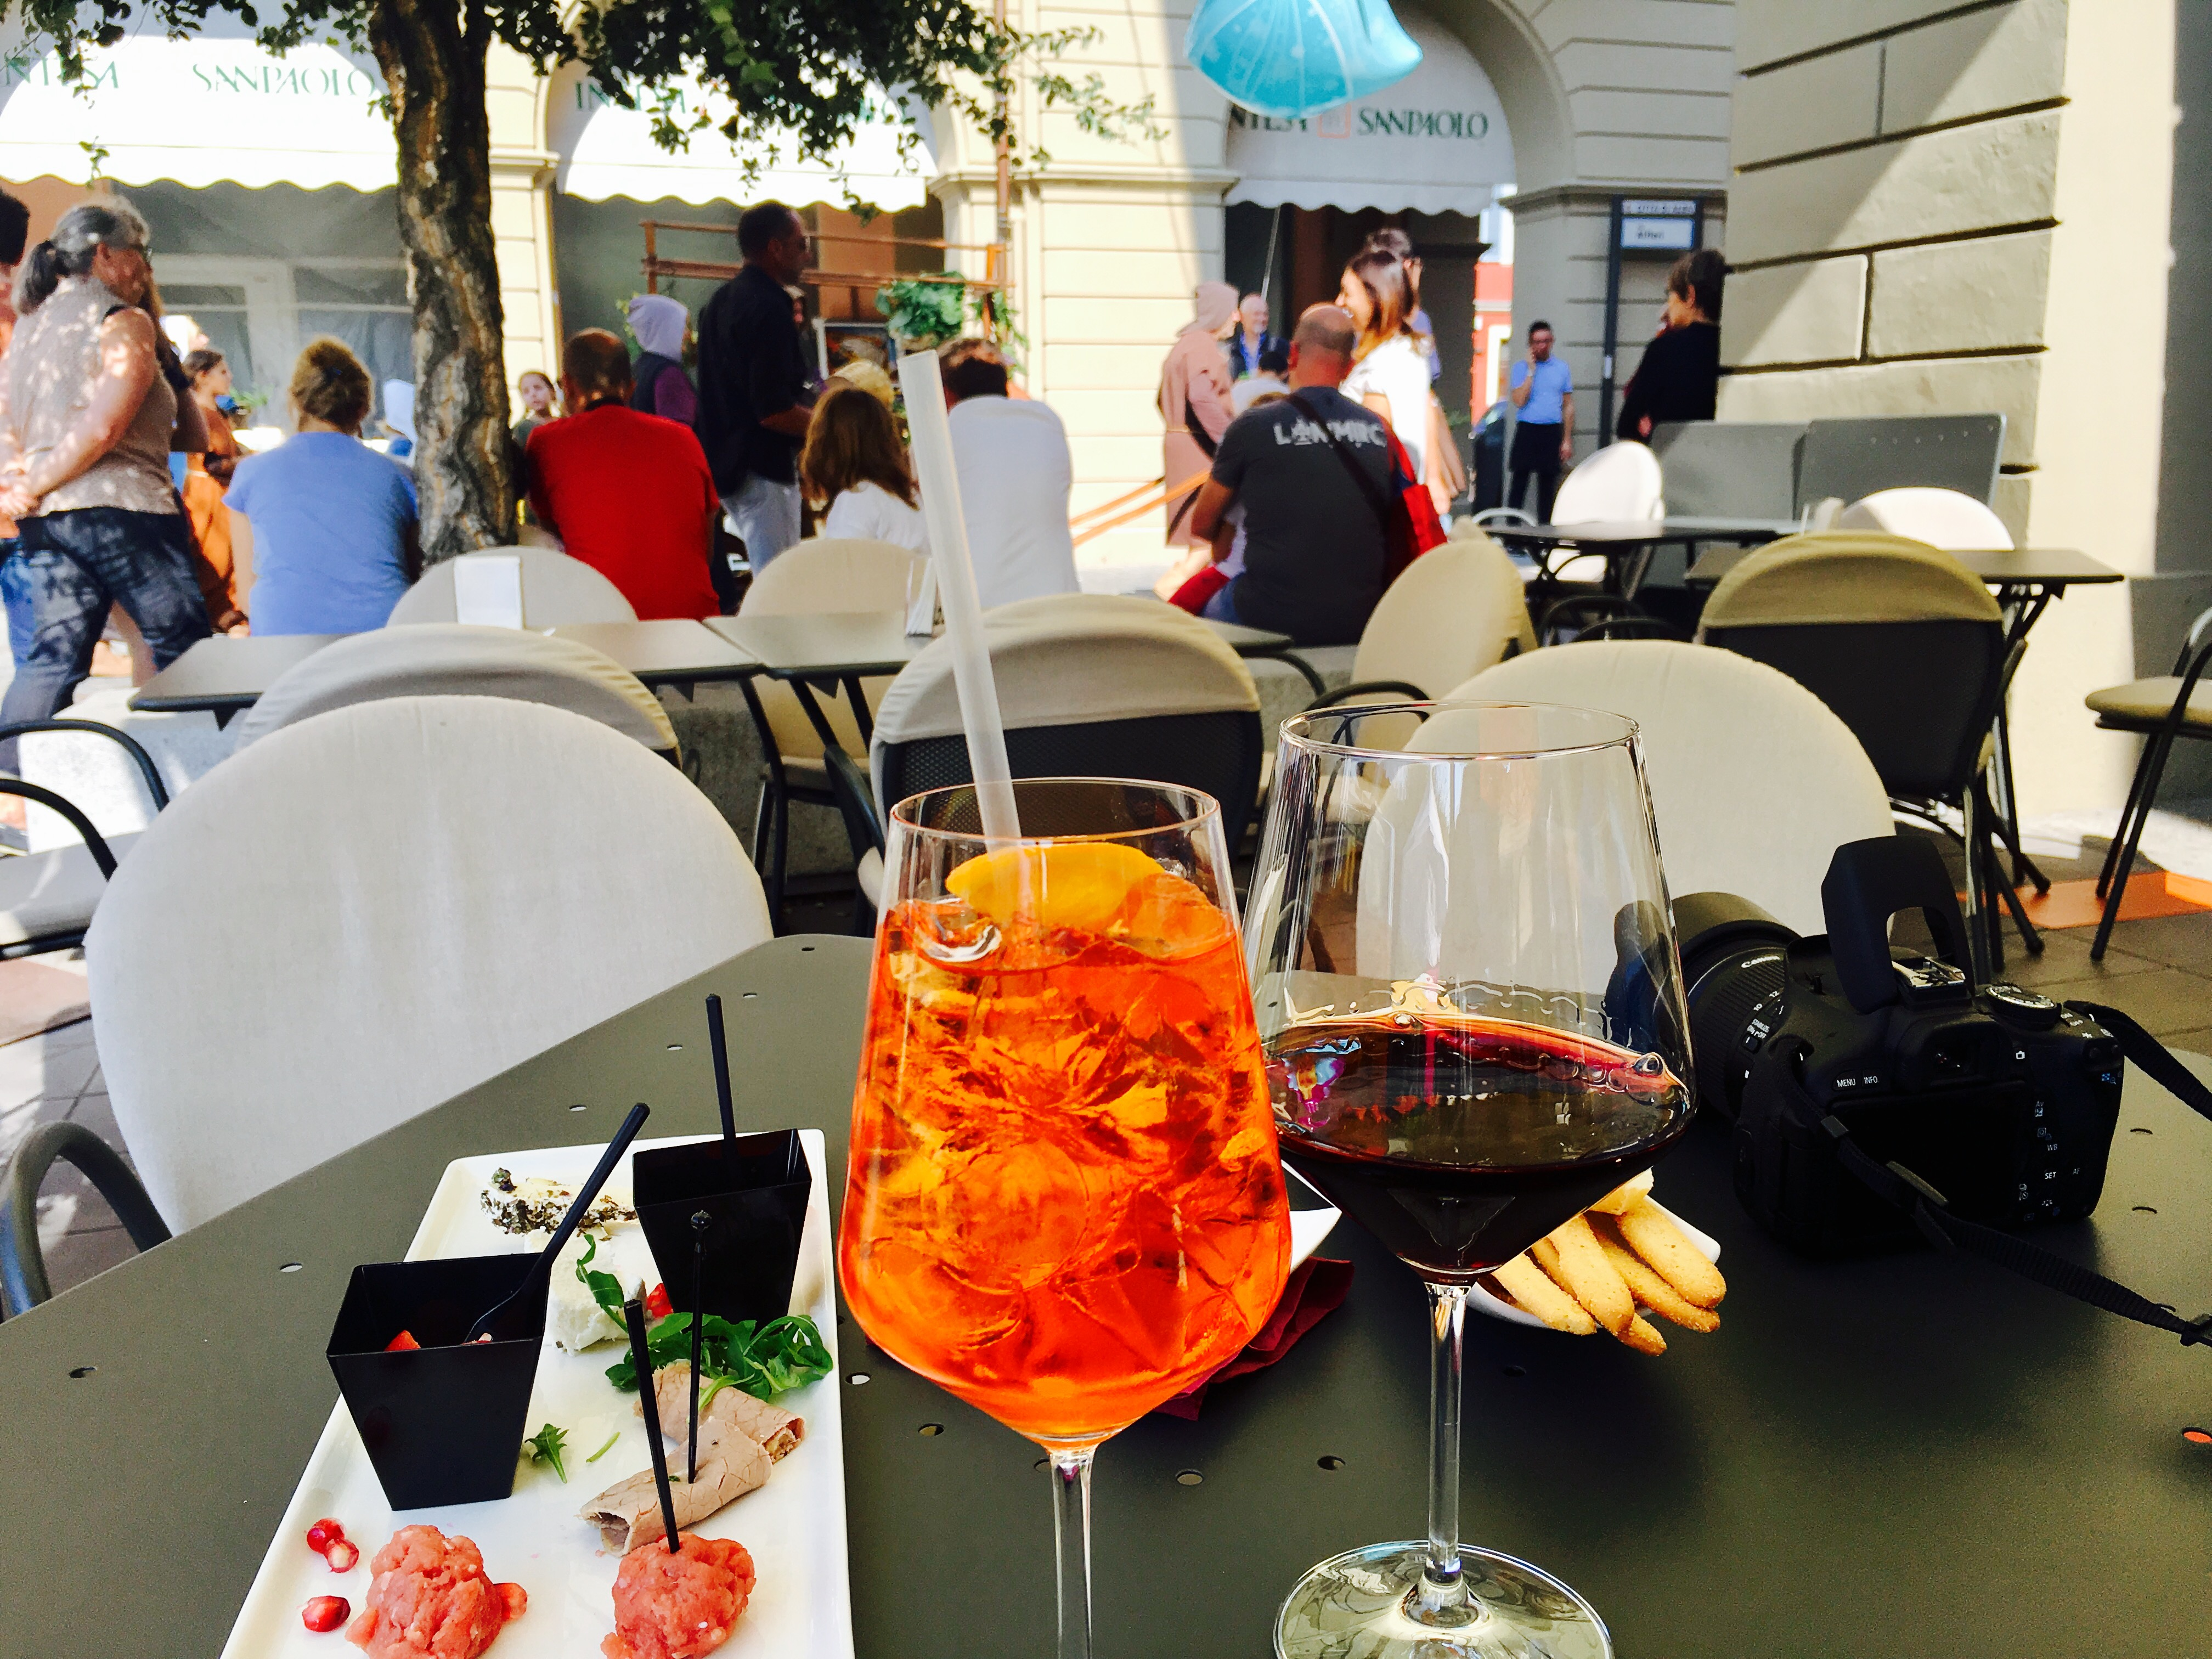 Apertivo at my favorite wine stop in Alba - Enoteca Roberto Sarotto